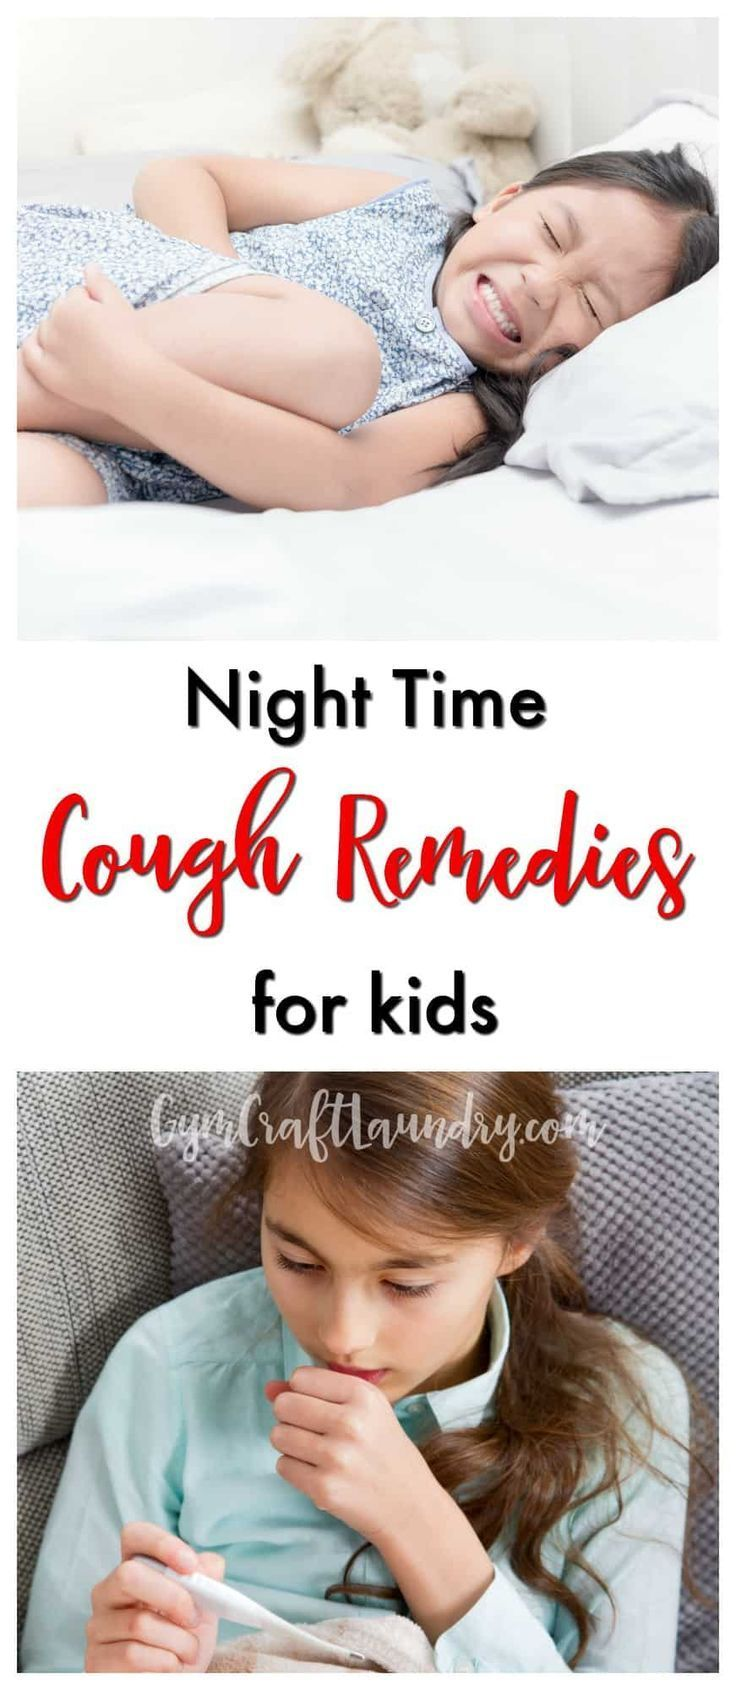 Try These Cough Remedies For Kids At Night Cough Remedies For Kids Cough Remedies Kids Cough